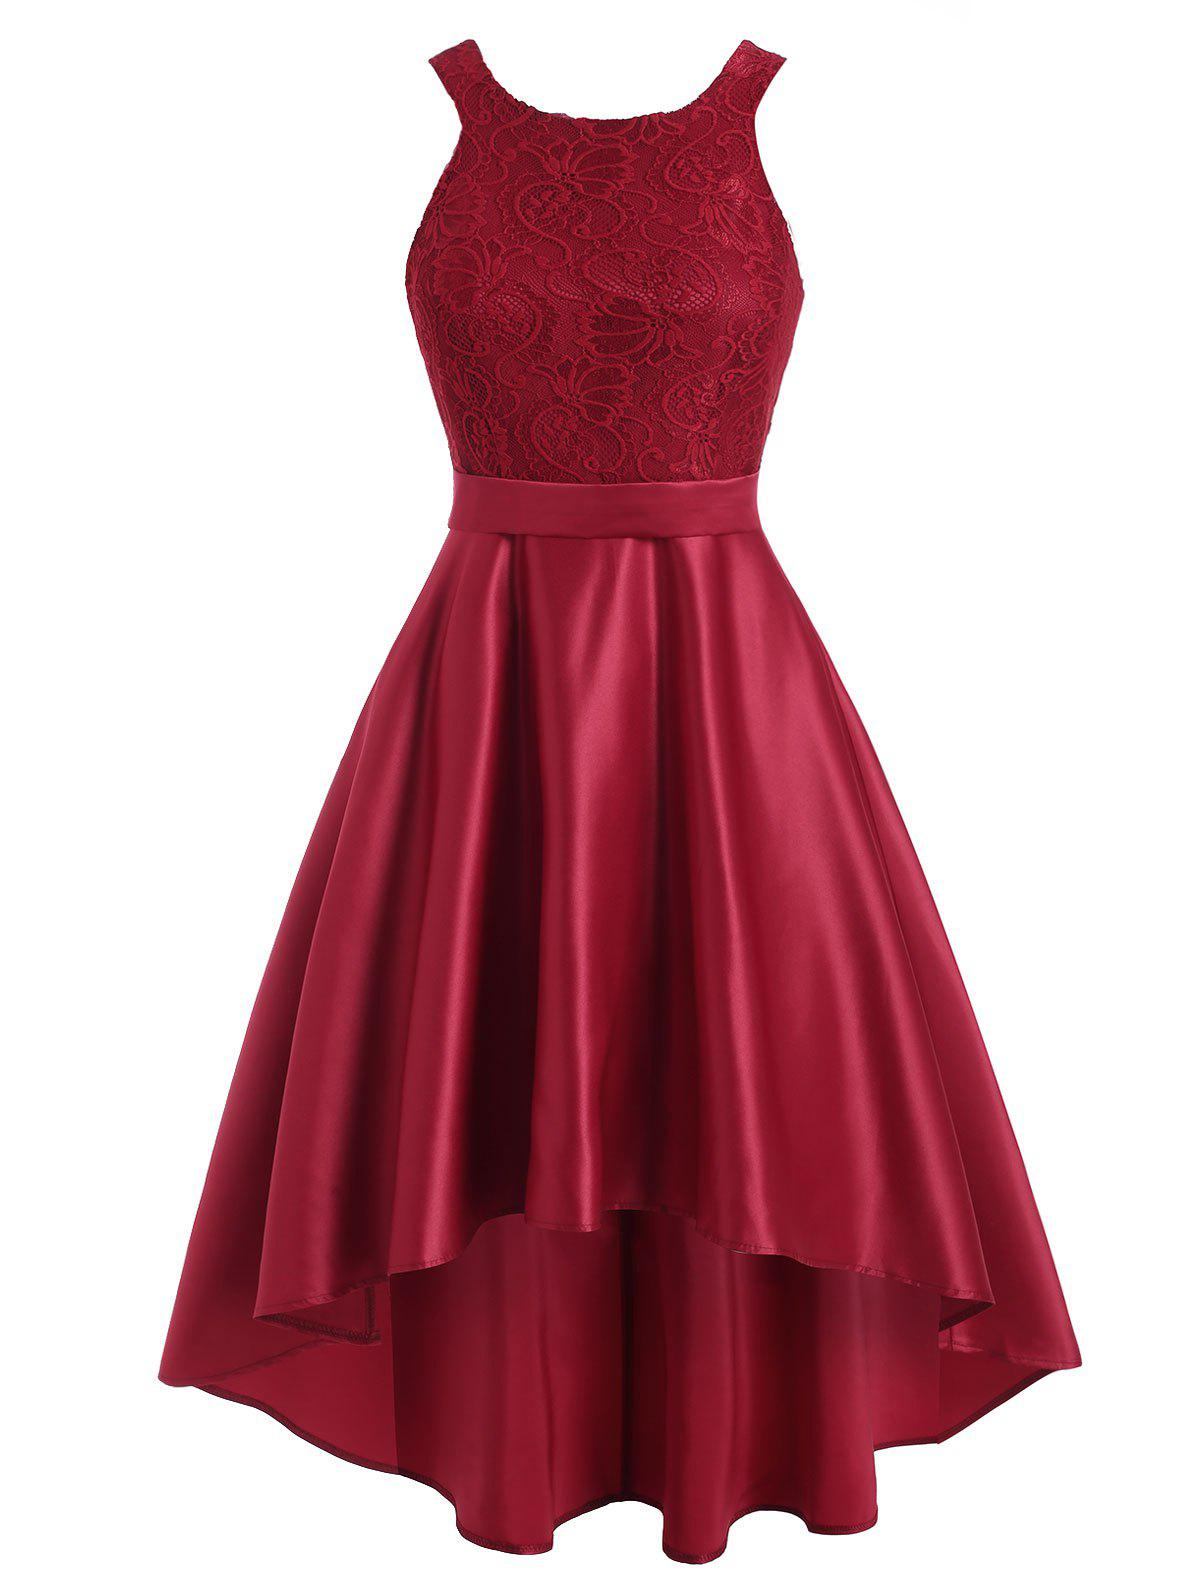 Lace Insert Sleeveless High Low Dress - RED L